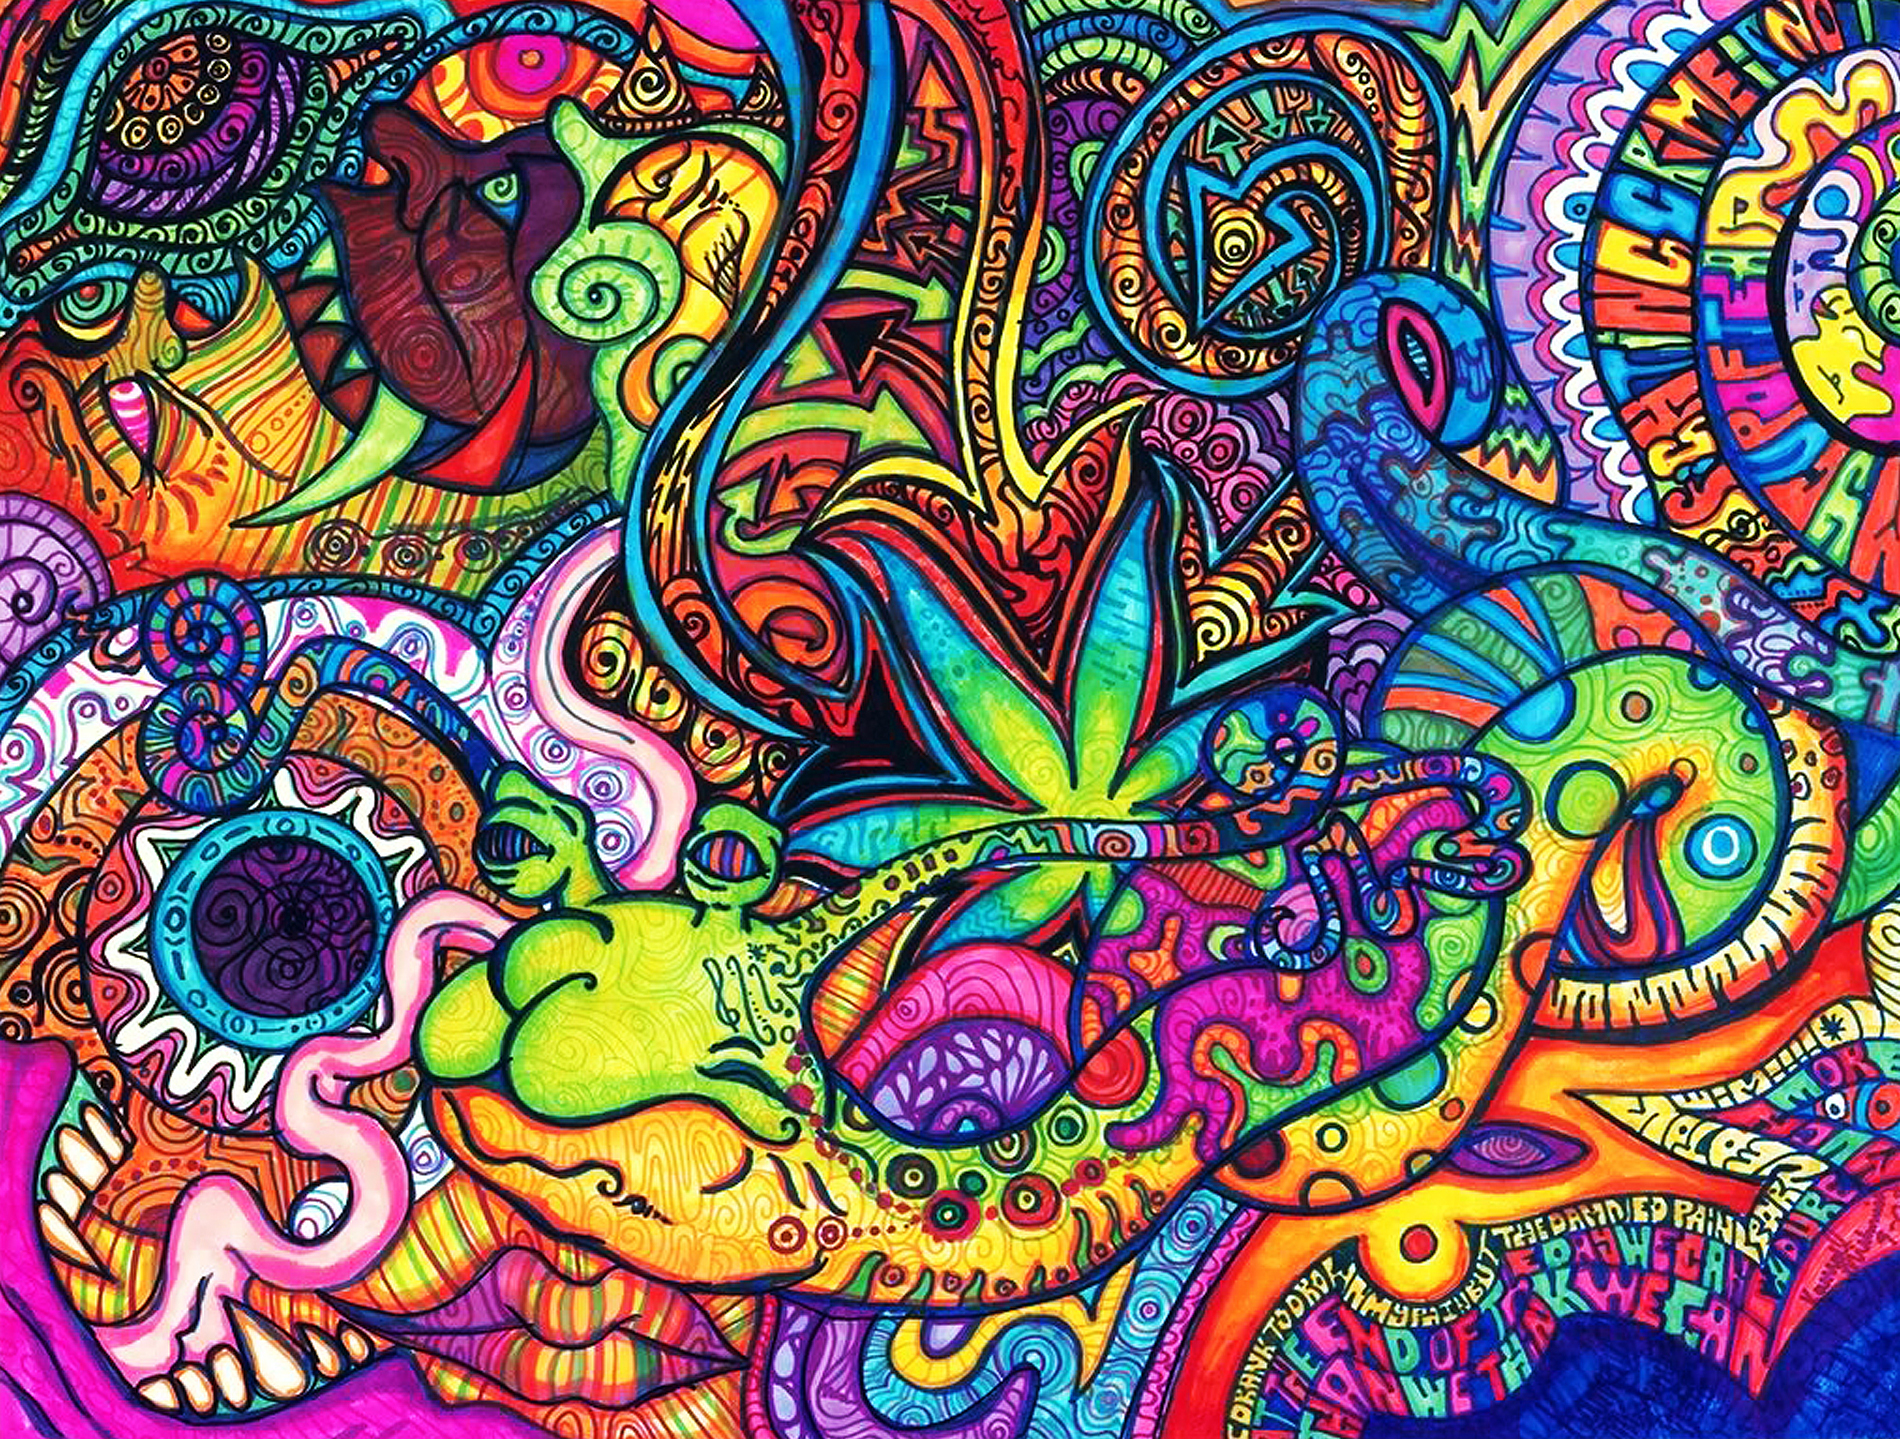 529 Psychedelic HD Wallpapers Background Images 1900x1439